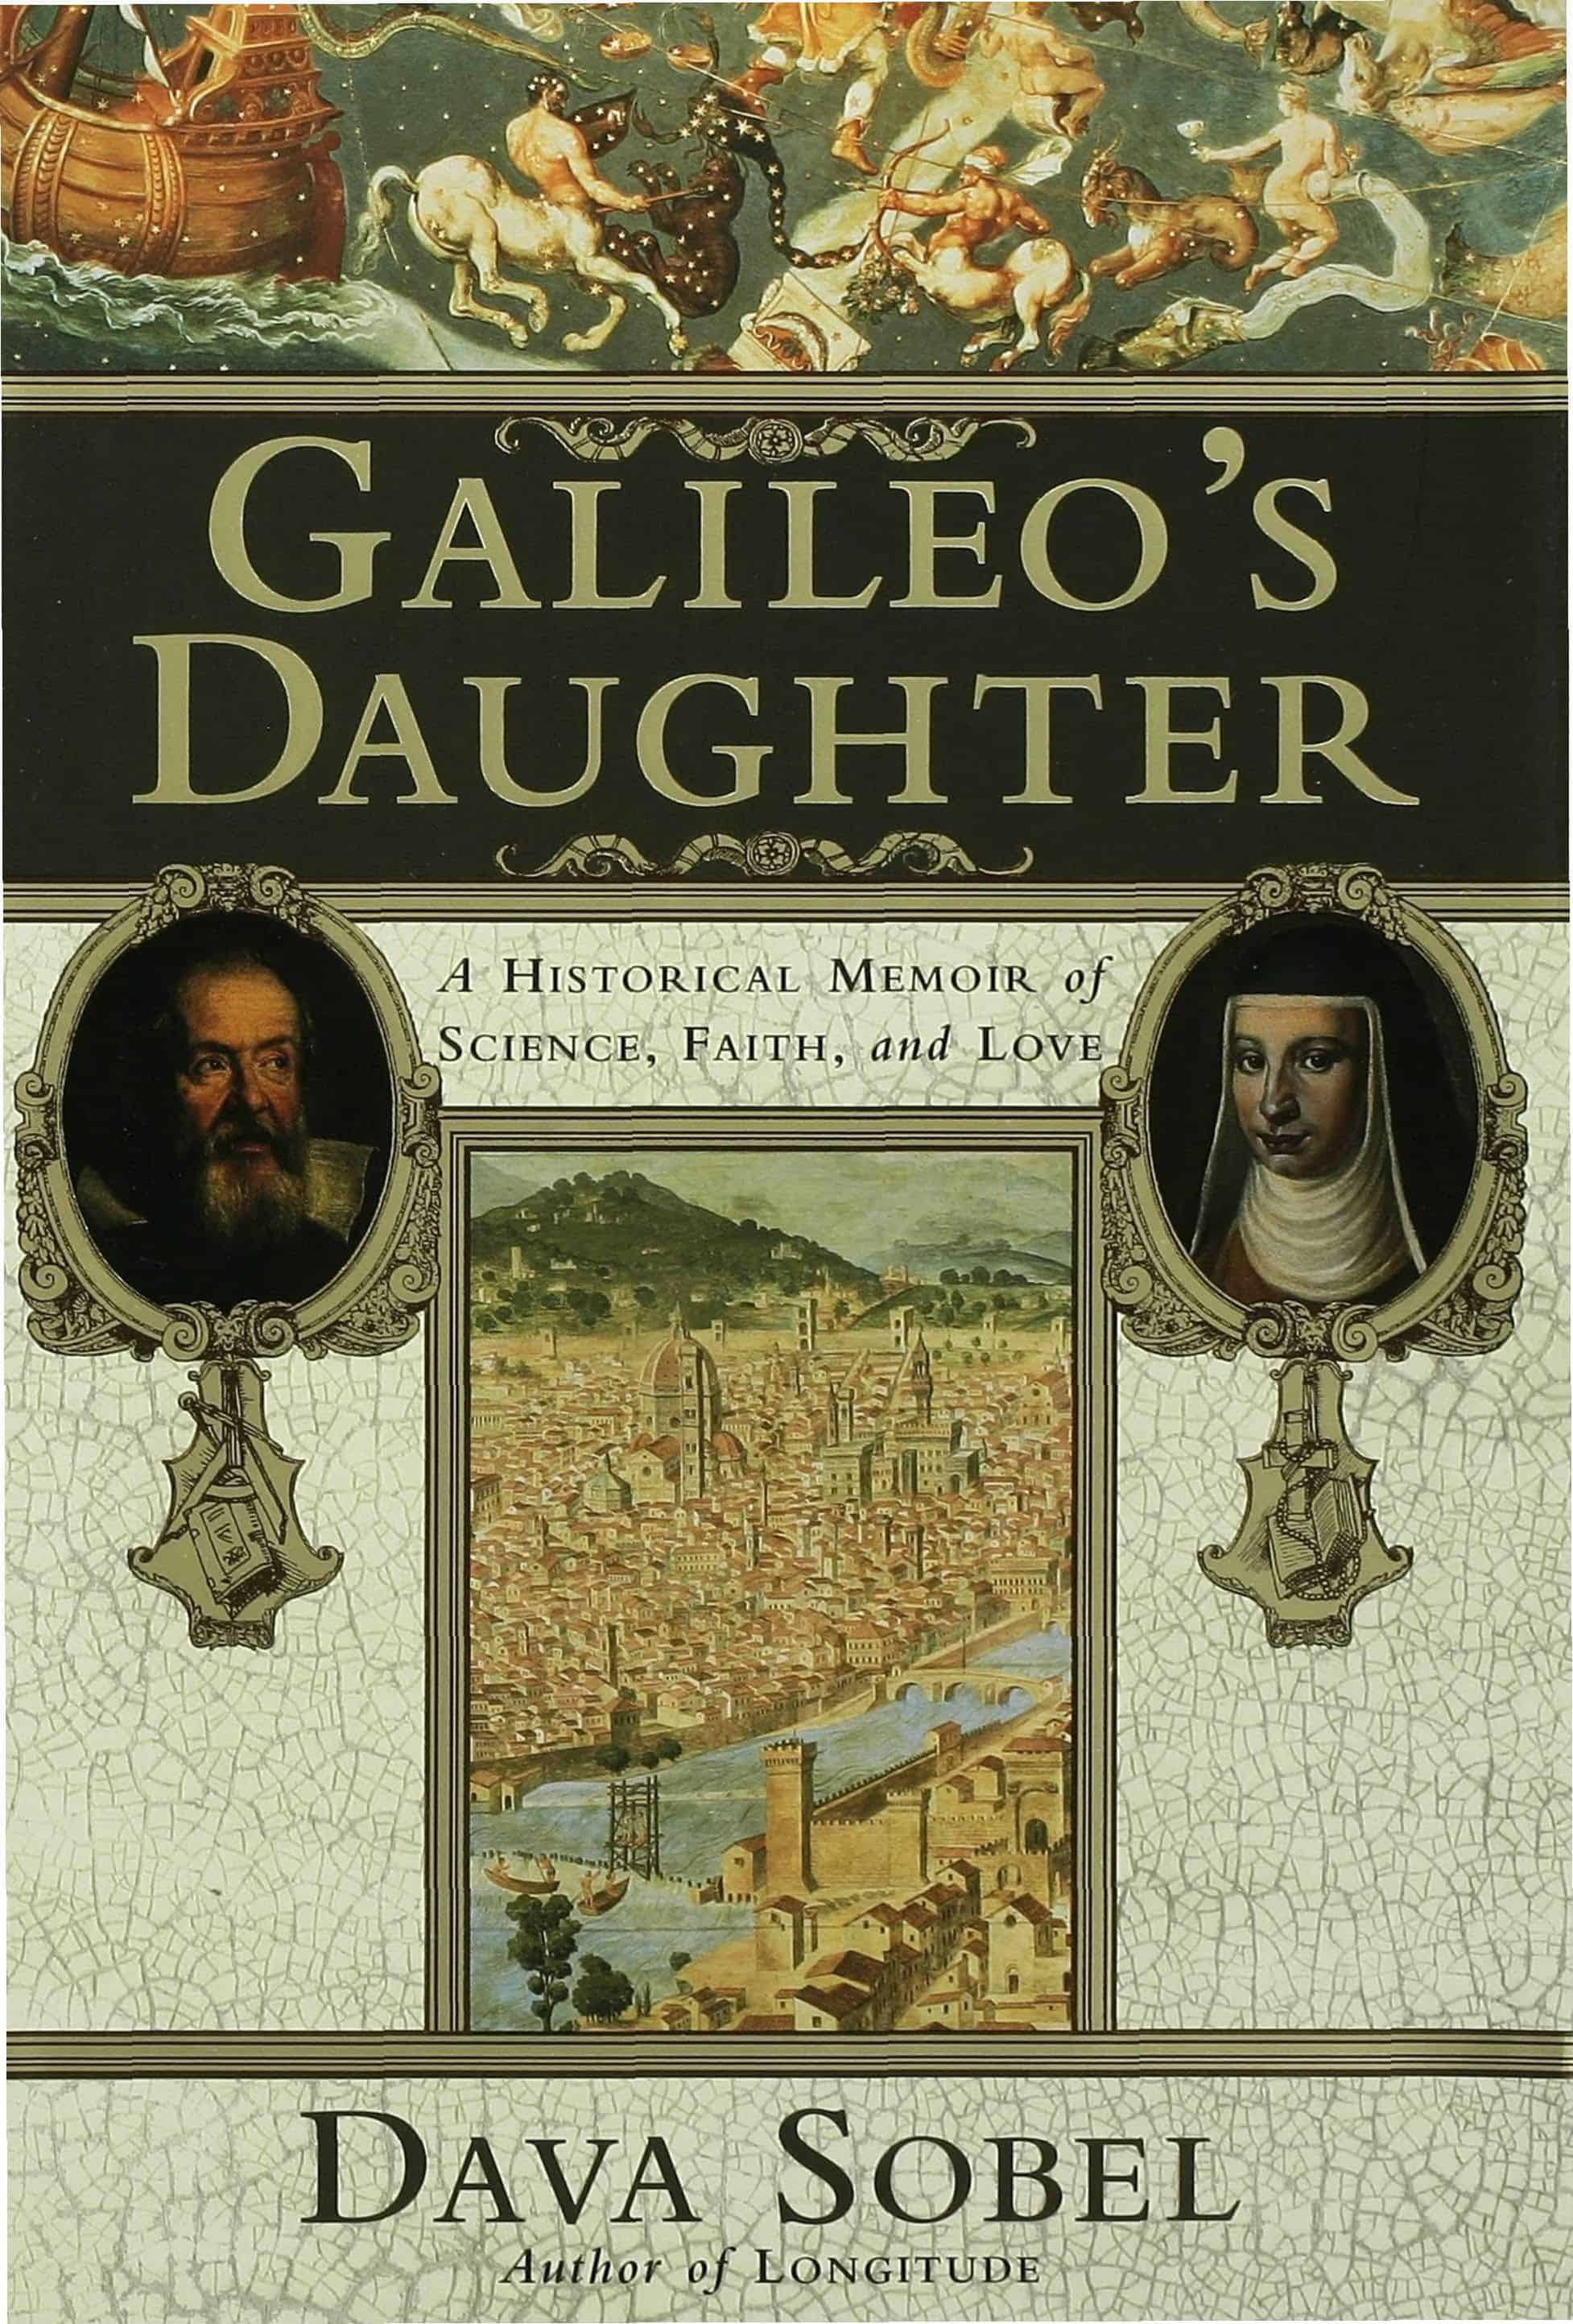 Galileo's Daughter A Historical Memoir of Science Faith and Love - Galileo's Daughter: A Historical Memoir of Science, Faith, and Love